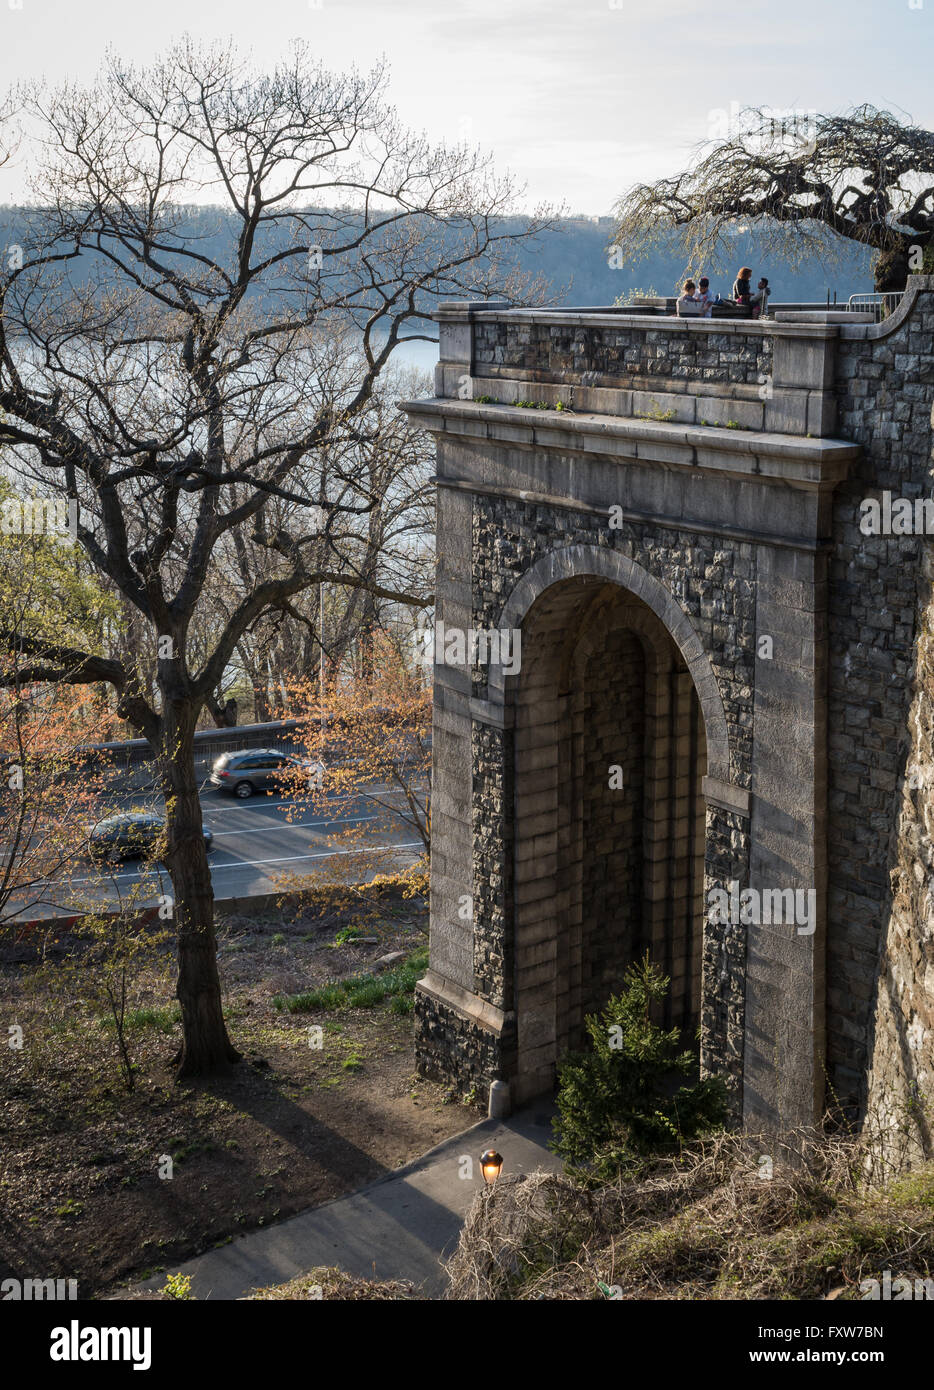 View of the Billings Arcade from the South in Fort Tryon Park, New York City, a grand arcade built from Maine granite. - Stock Image